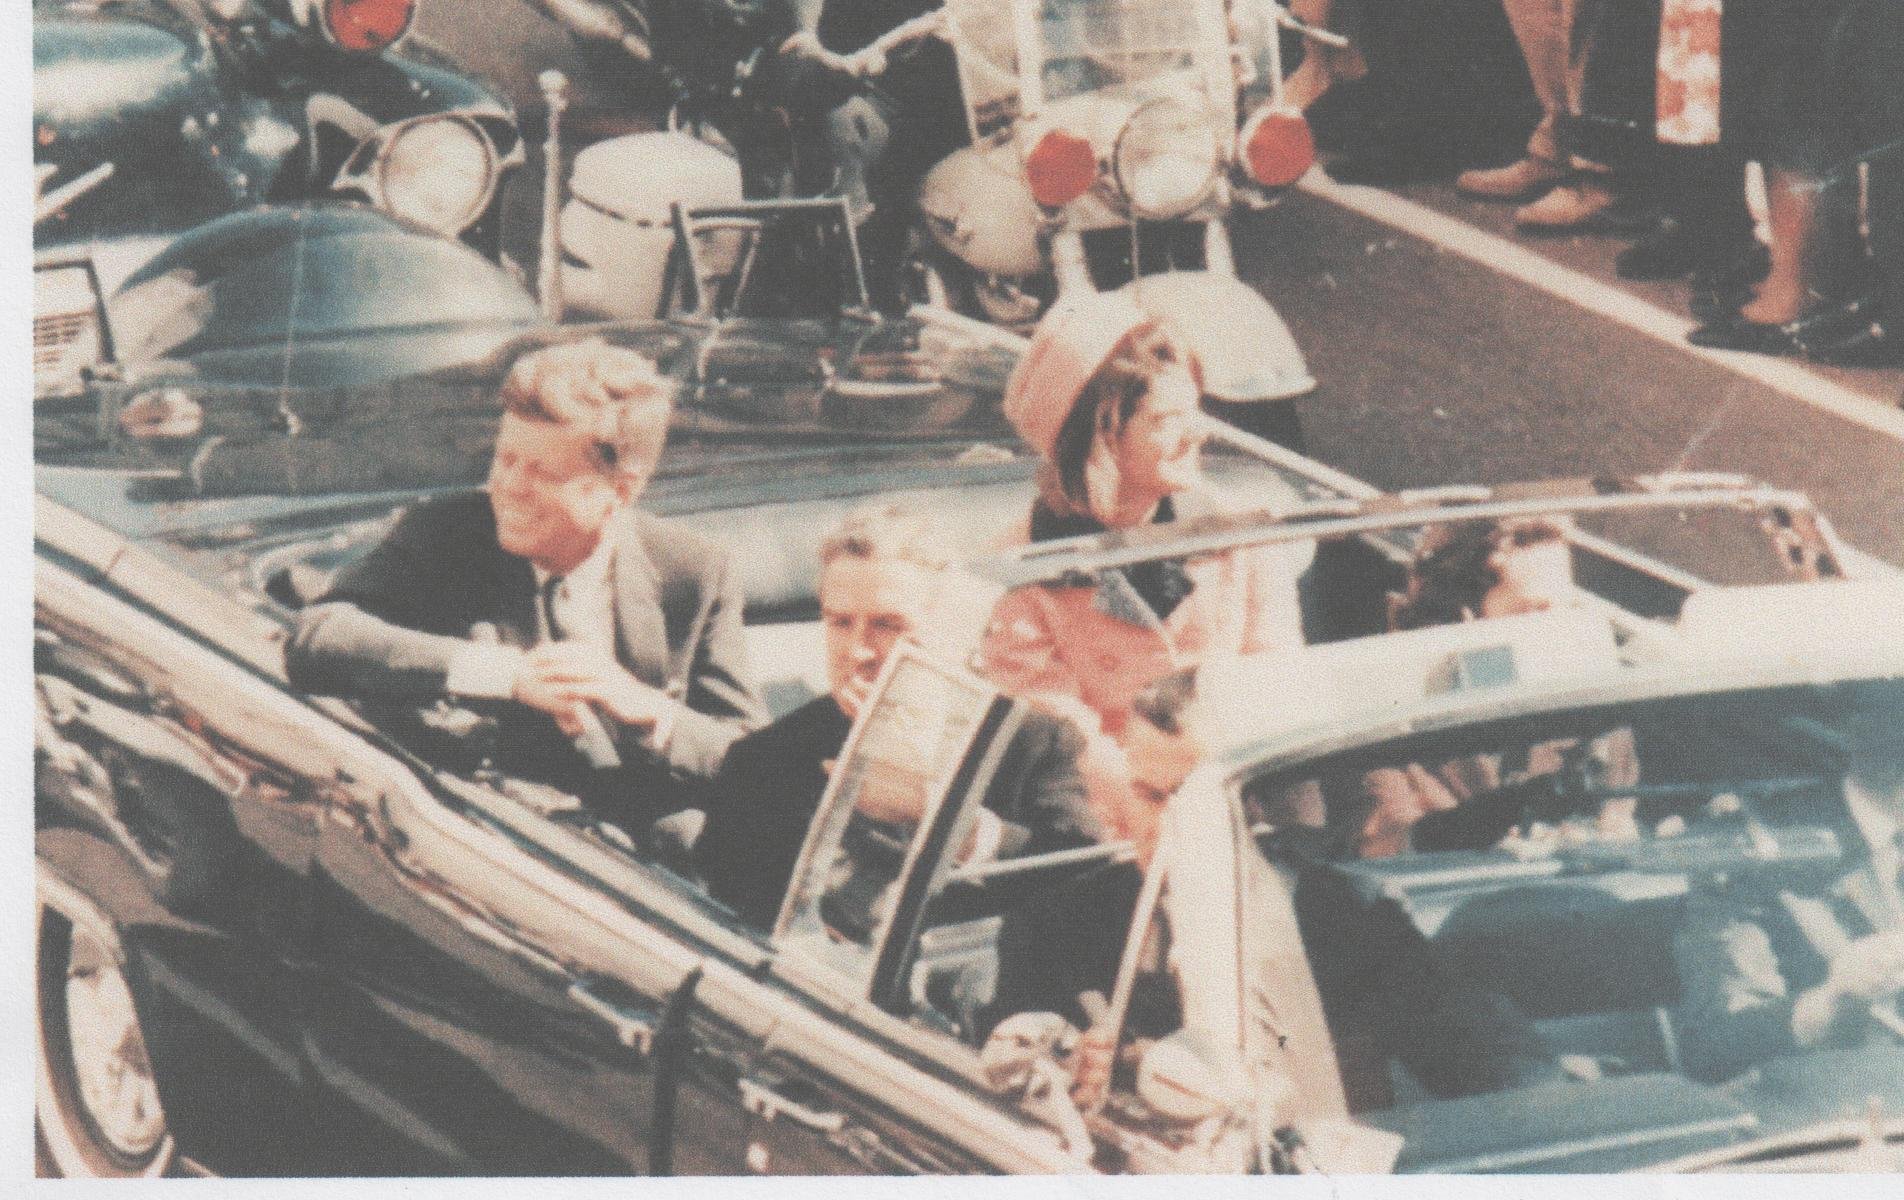 jfk term papers New 2016 more term papers, papers, aarp bulletin comments: the cia director withheld information about the assassination of john f wul original signed jfk assassination involve in.